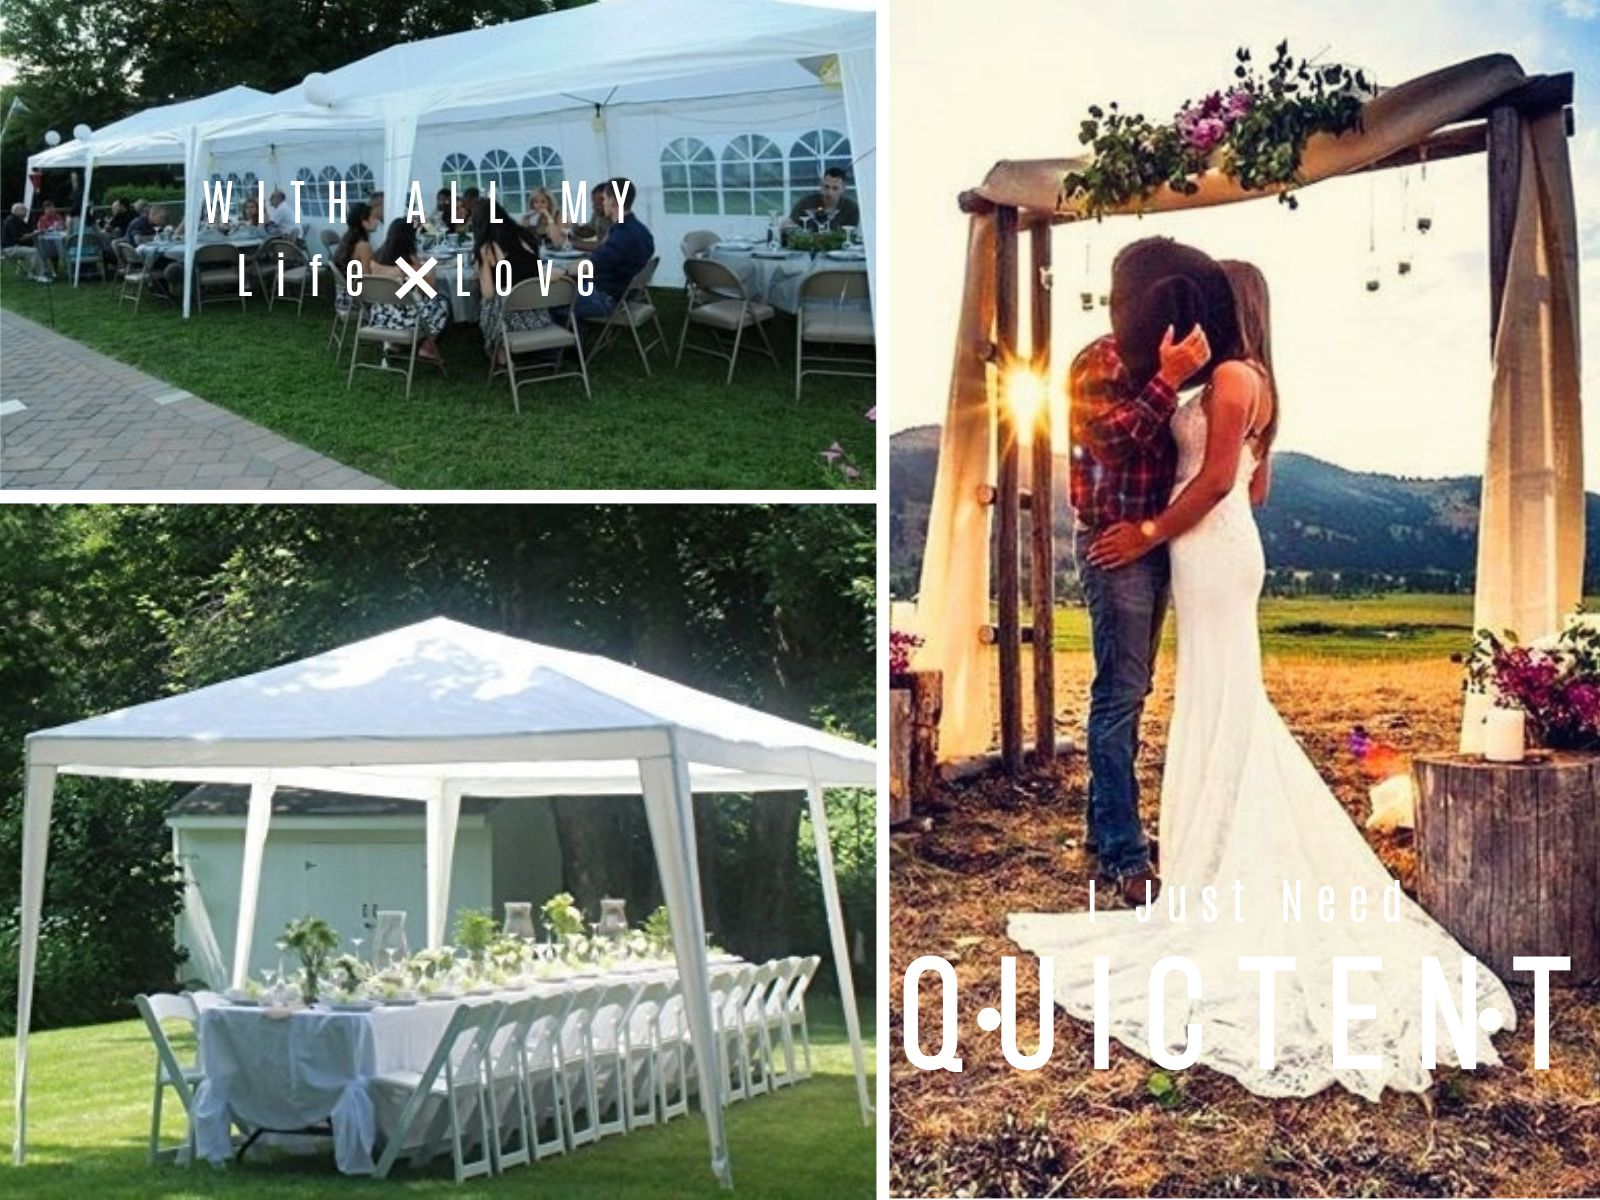 10 X30 White Party Tent With Images Party Tent Tent Wedding Party Planner